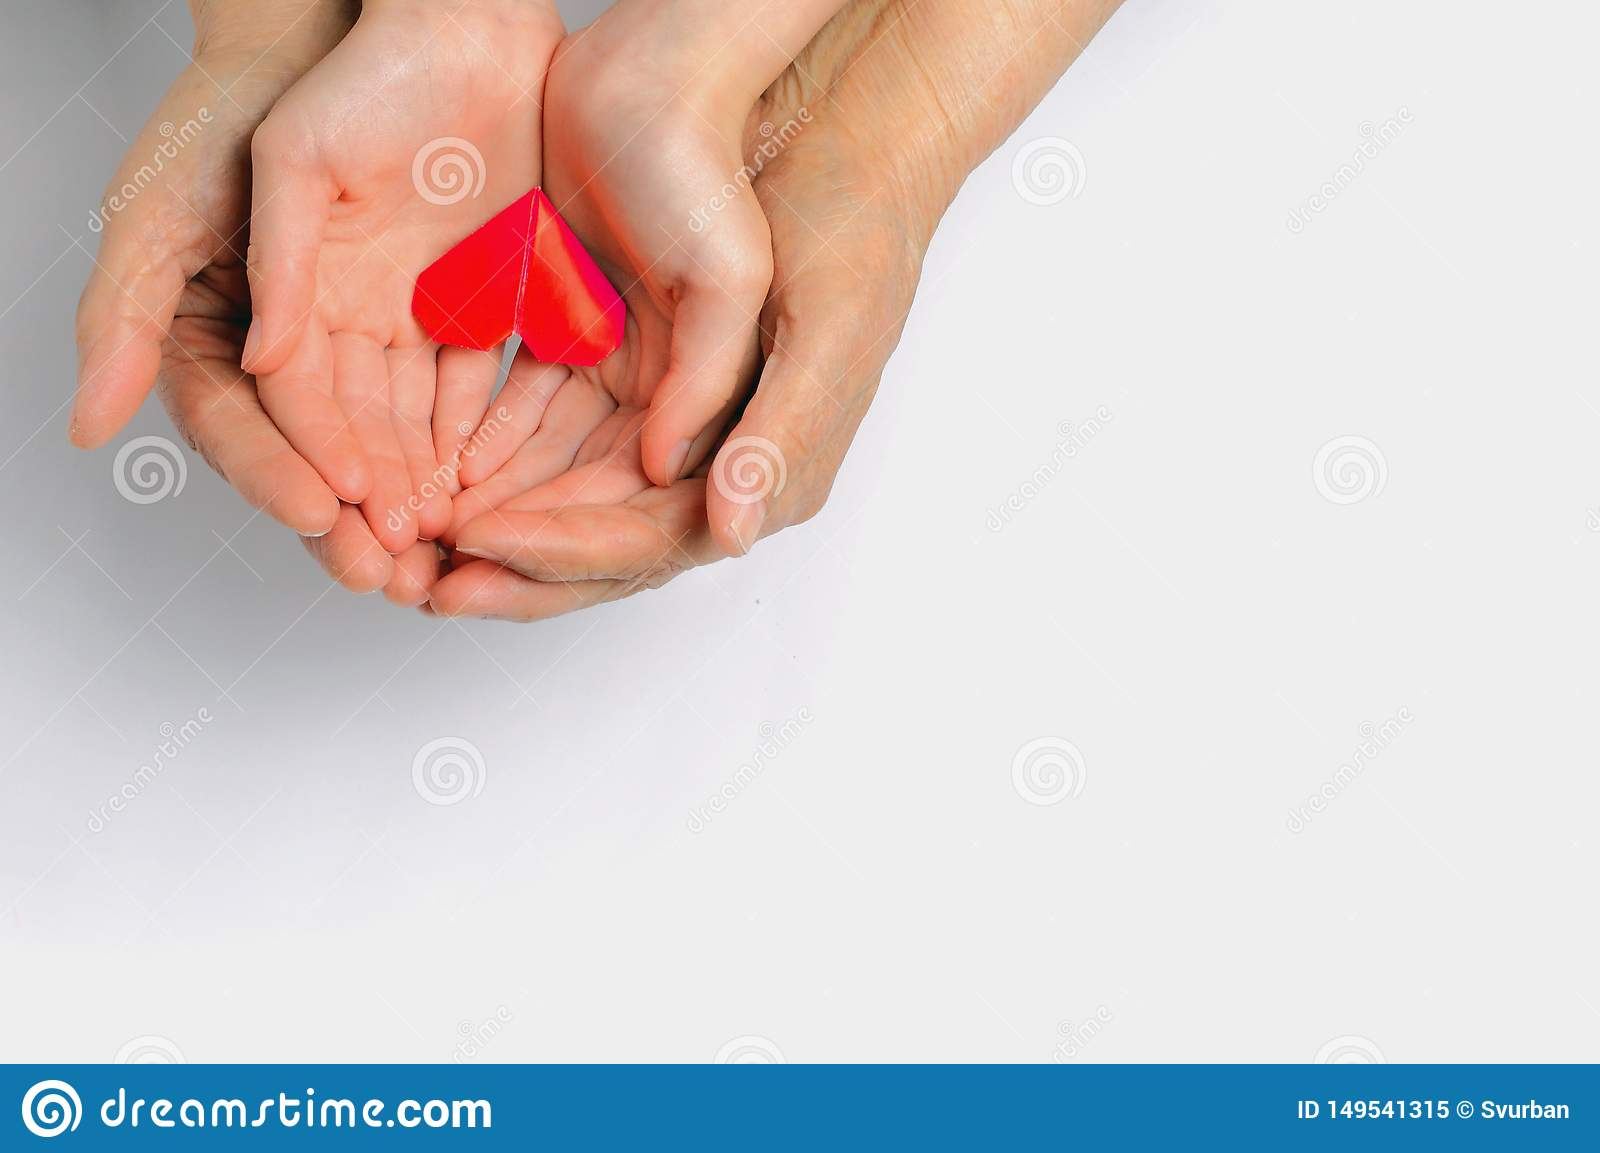 Hands of an adult and a child hold a red heart